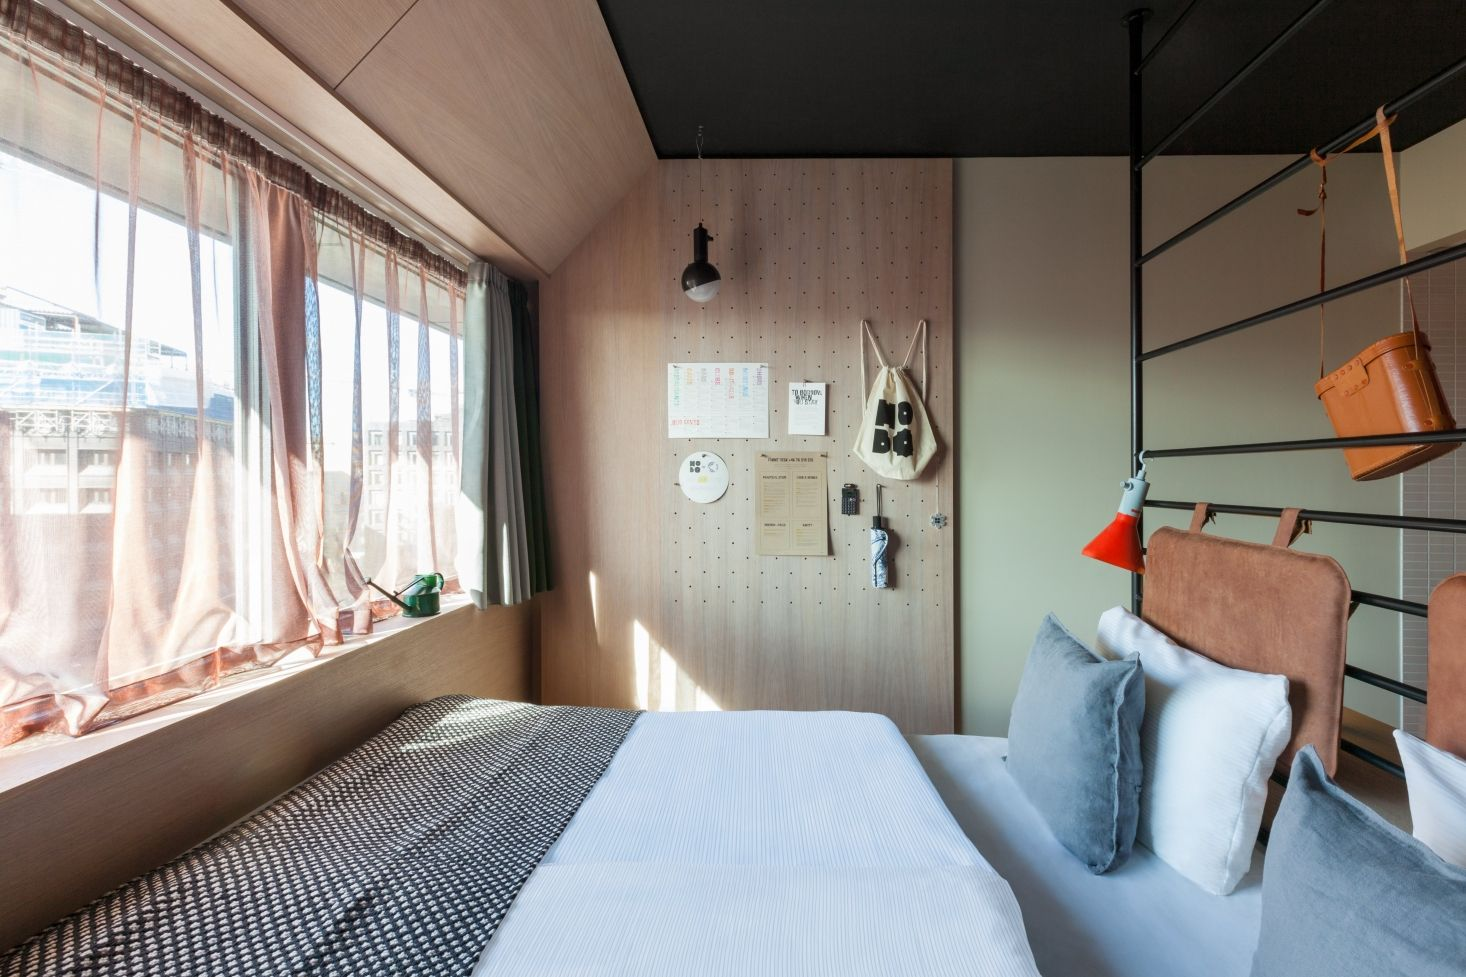 Clever use of tiny bedroom hobo hotel stockholm designed by studio aisslinger patricia parinejad photo